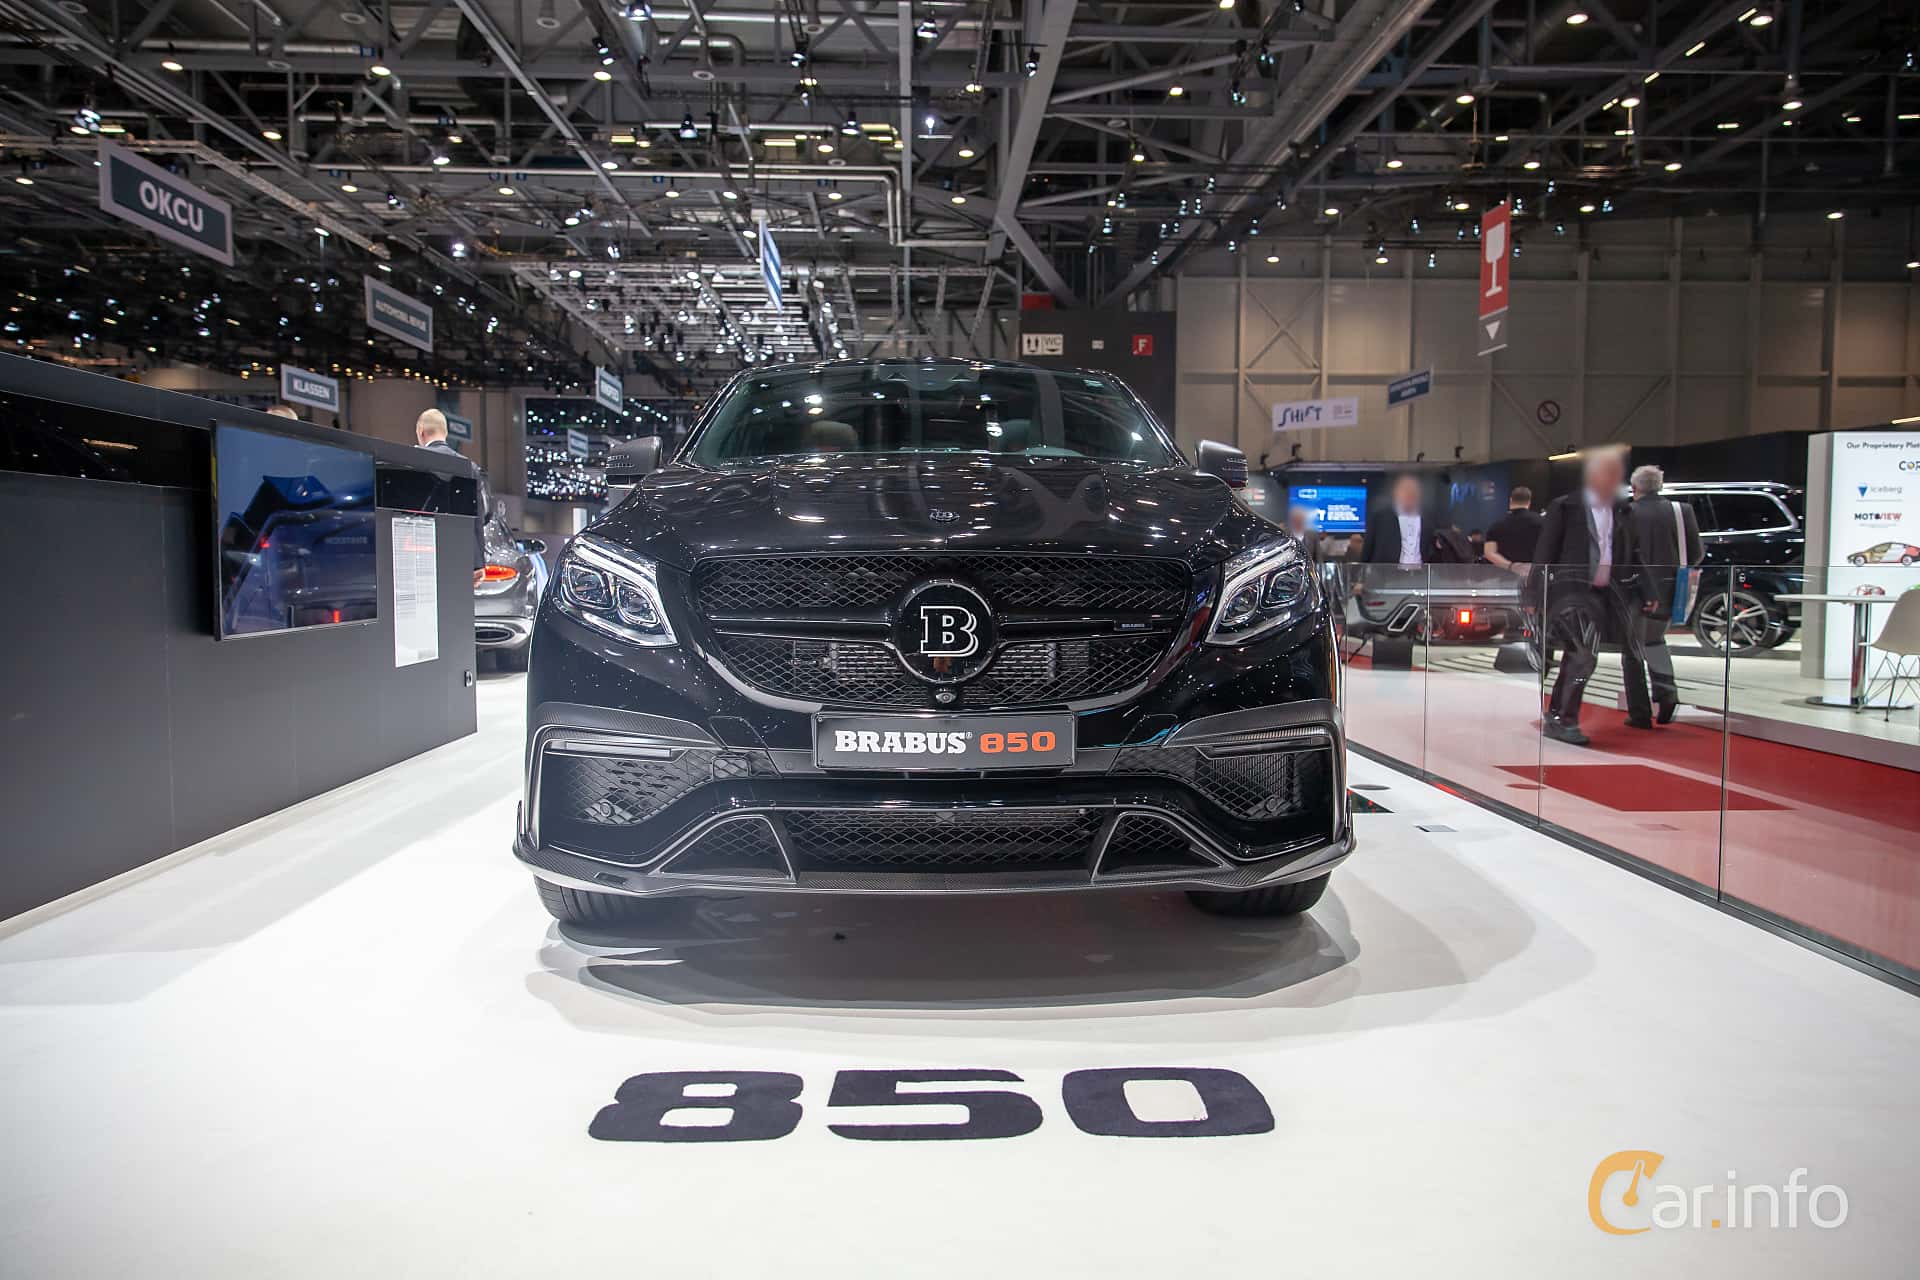 Brabus GLE 850 Coupé  AMG SpeedShift Plus 7G-Tronic, 850hp, 2019 at Geneva Motor Show 2019